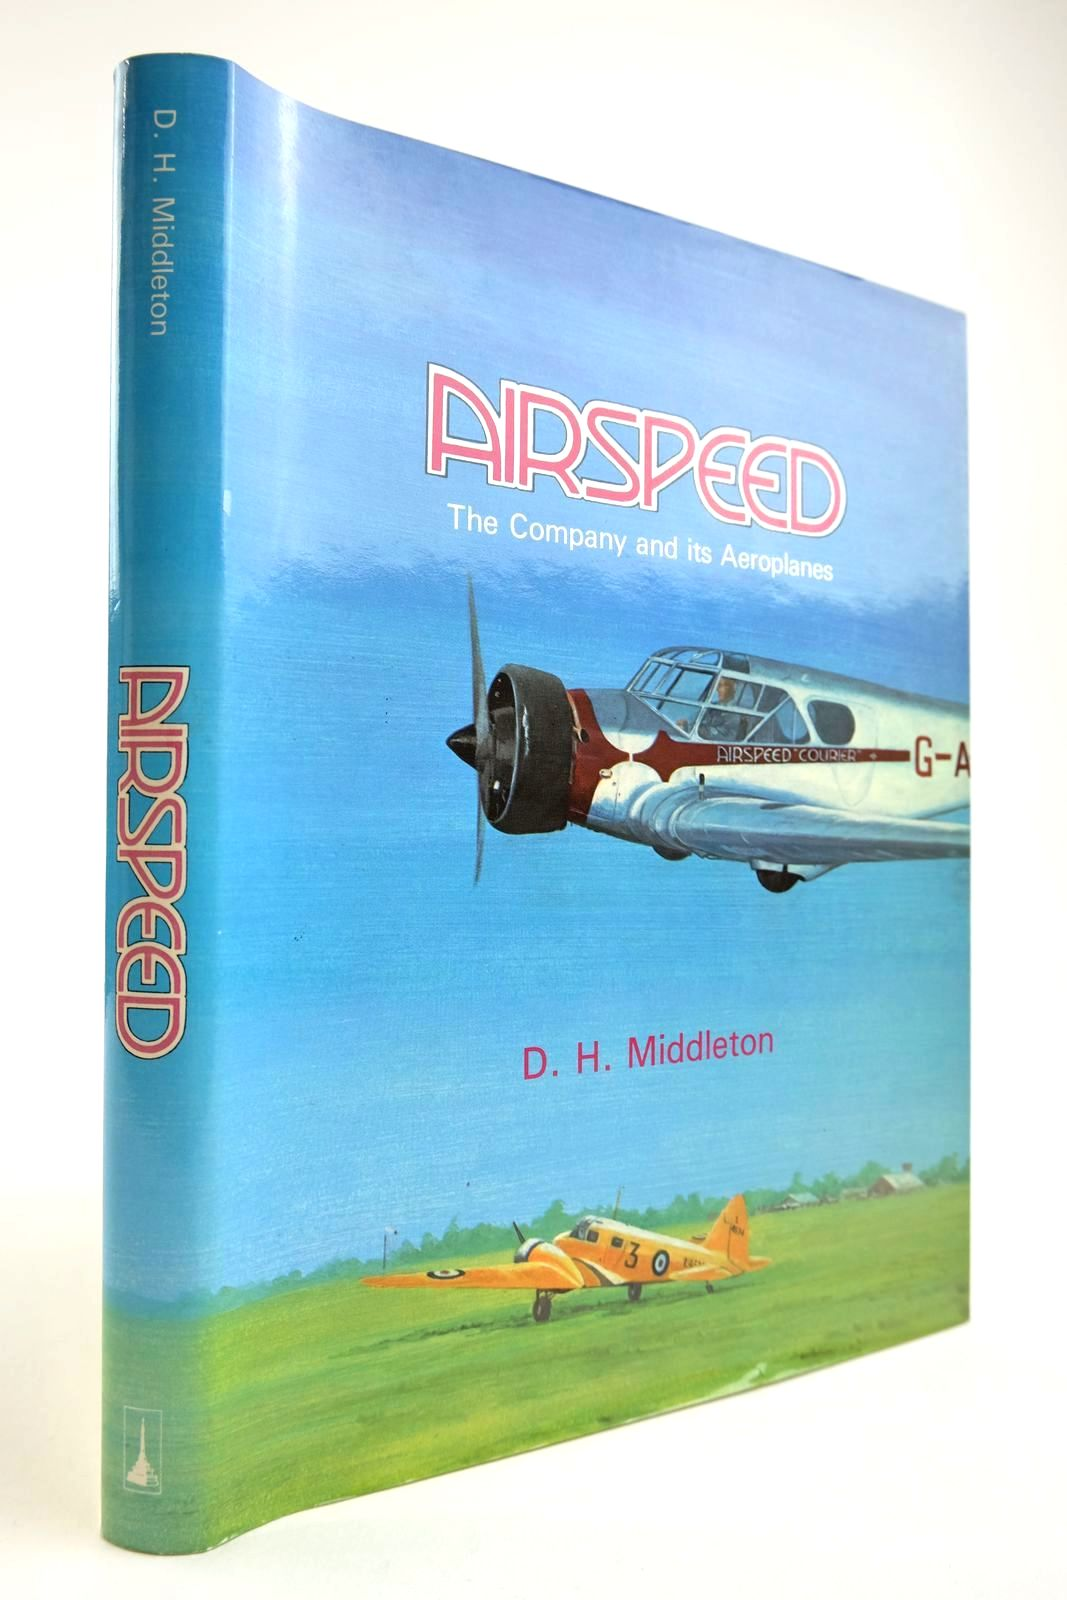 Photo of AIRSPEED THE COMPANY AND ITS AEROPLANES written by Middleton, D.H. published by Terence Dalton Limited (STOCK CODE: 2134100)  for sale by Stella & Rose's Books